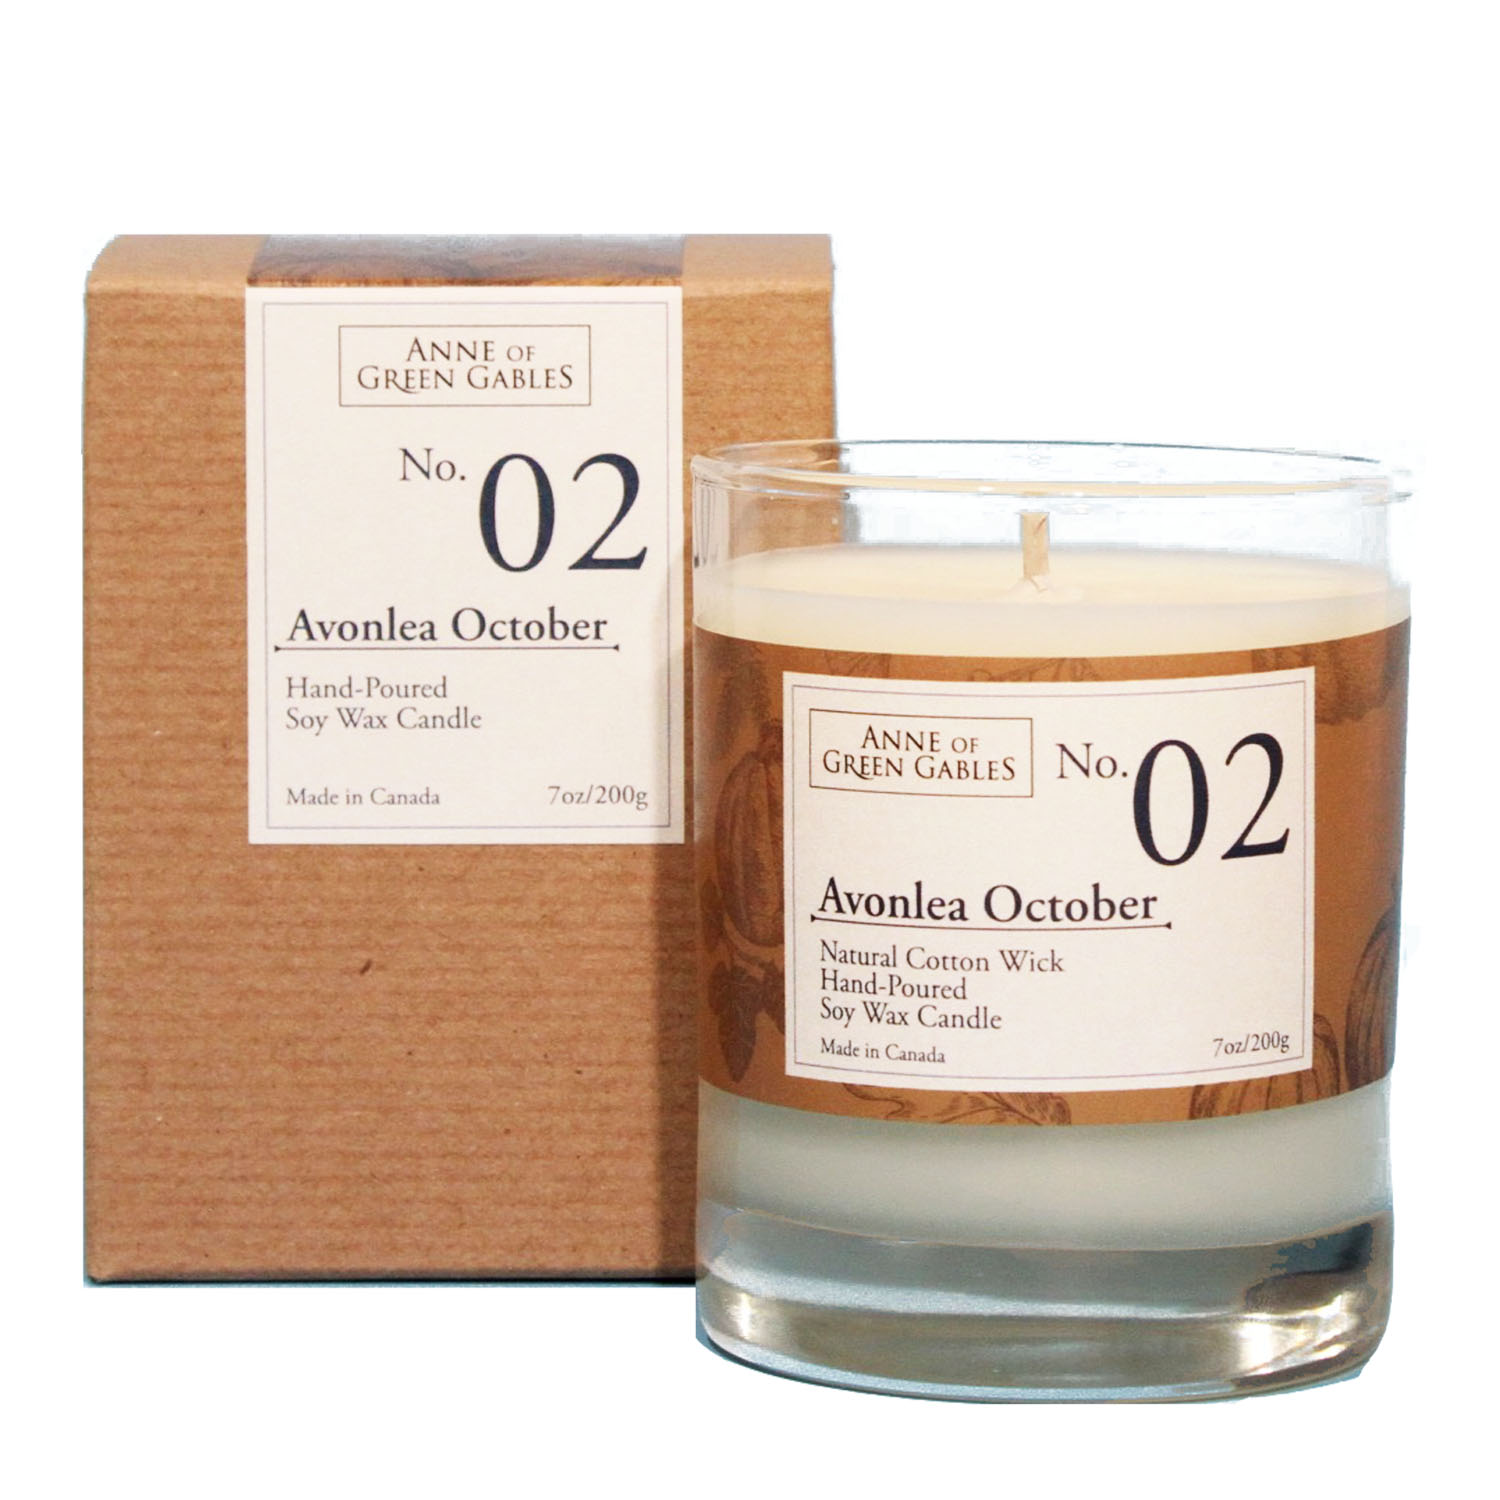 Avonlea October Candle